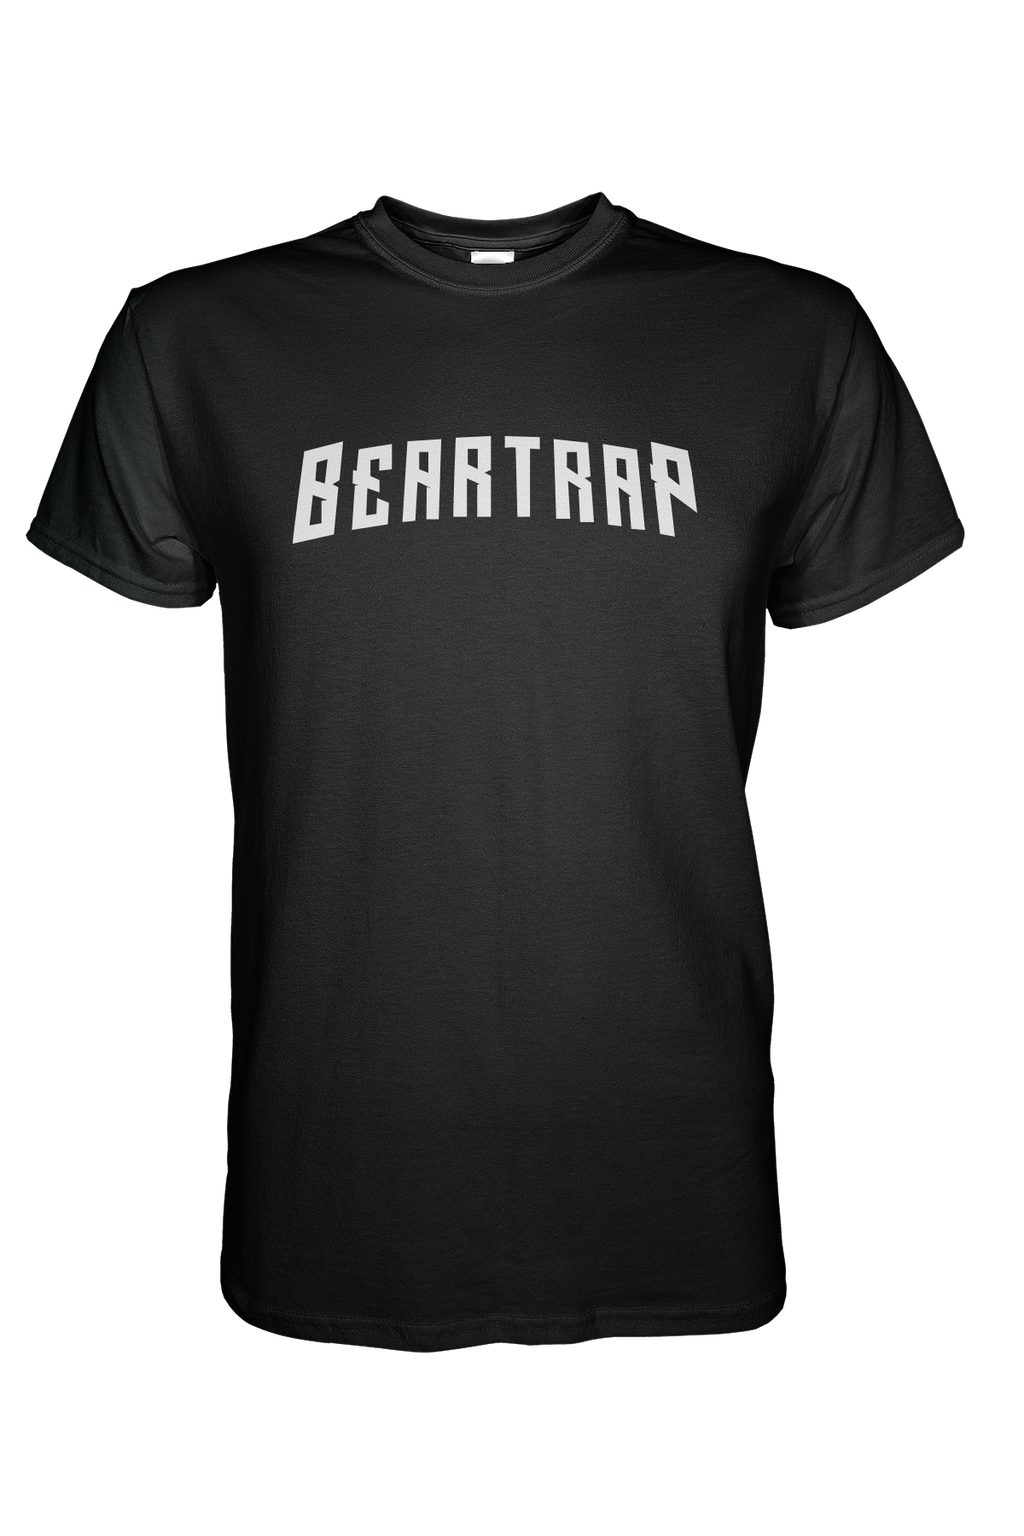 BearTrap Text T-Shirt